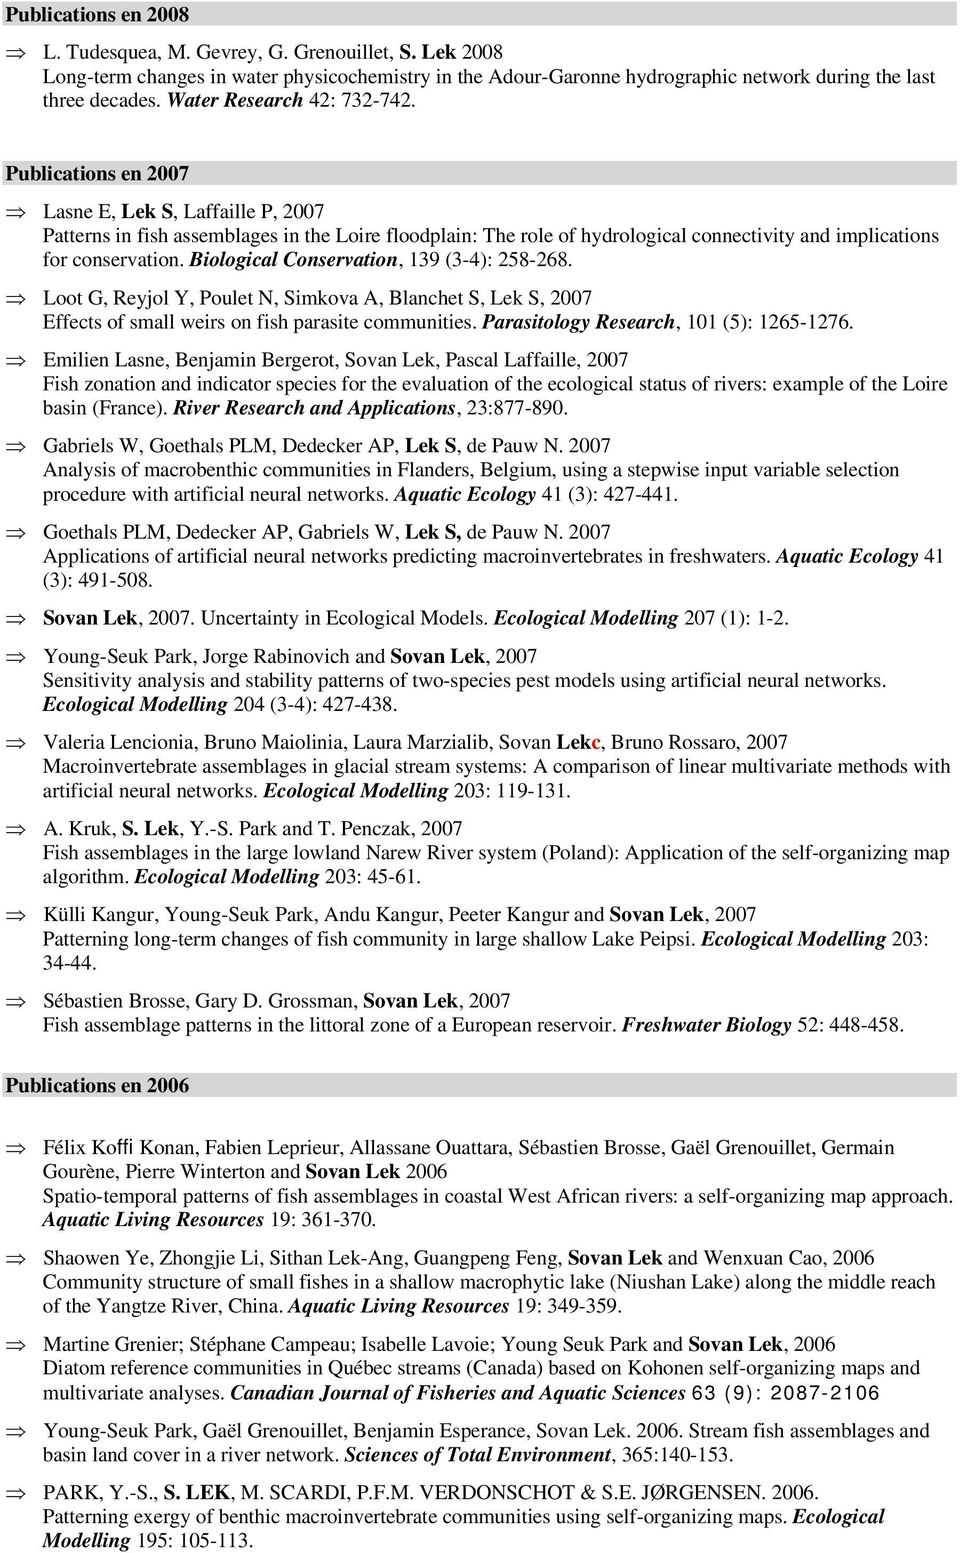 Publications en 2007 Lasne E, Lek S, Laffaille P, 2007 Patterns in fish assemblages in the Loire floodplain: The role of hydrological connectivity and implications for conservation.